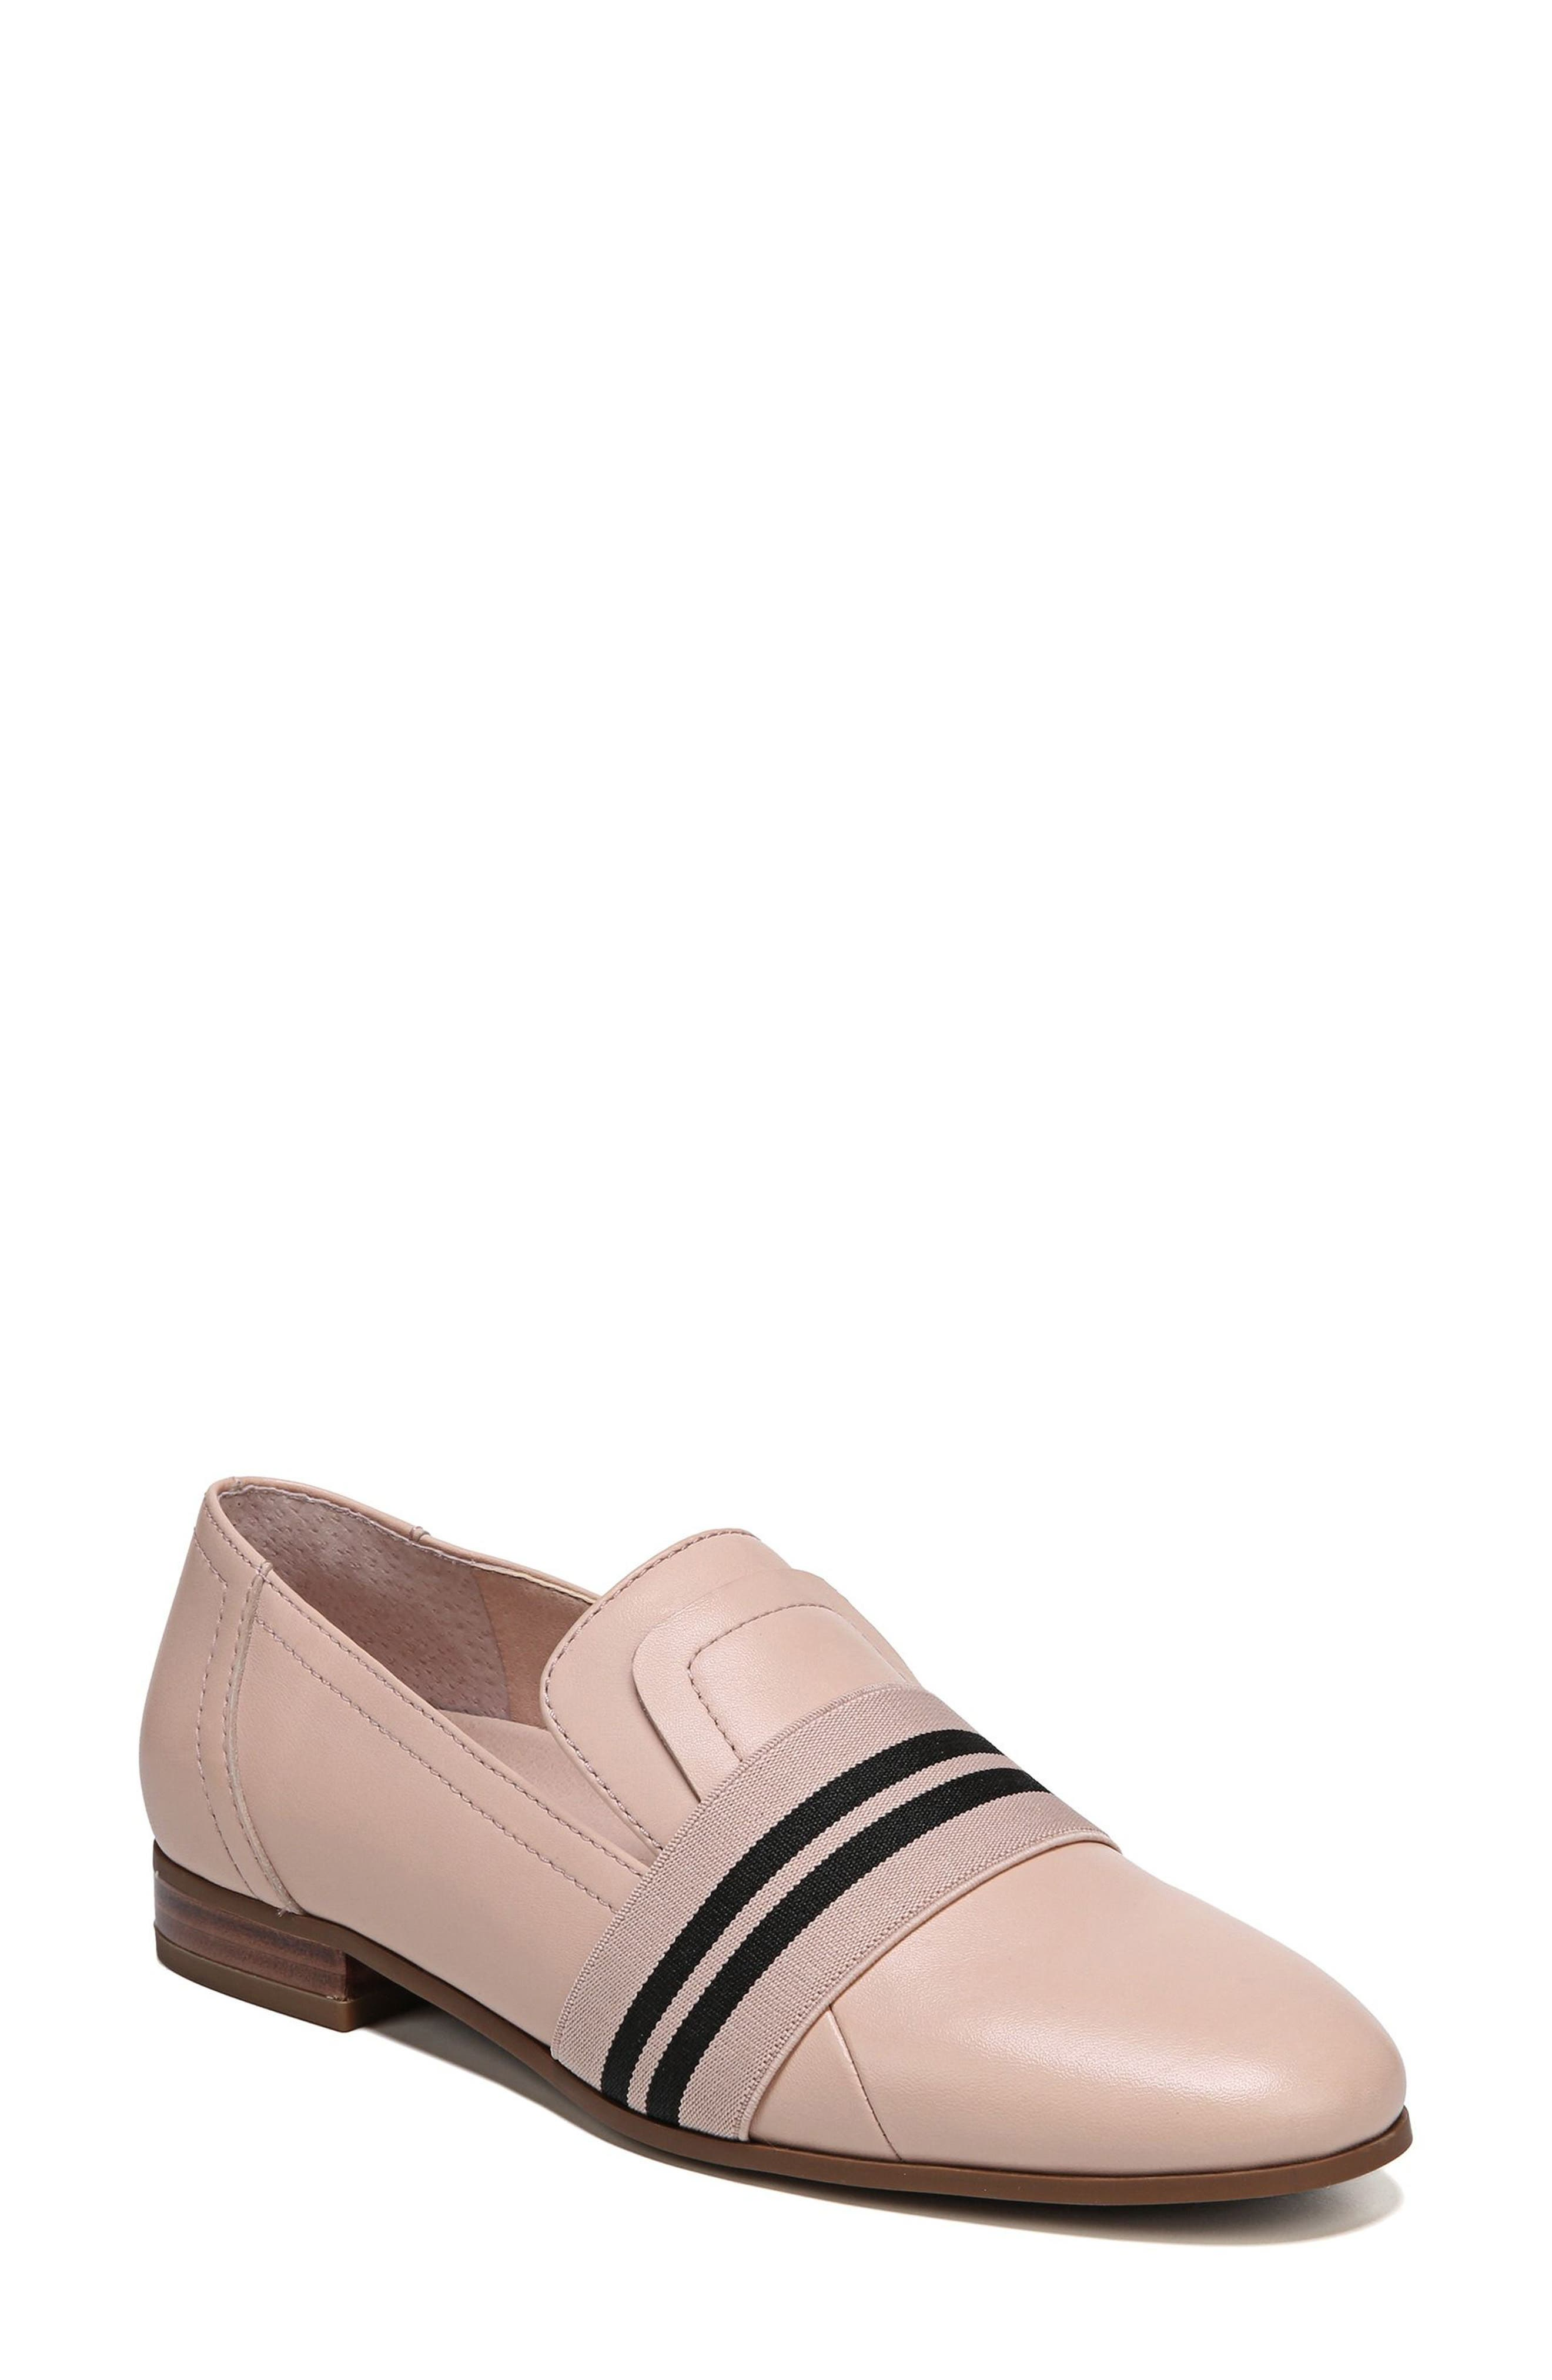 Odyssey Loafer,                             Main thumbnail 1, color,                             Blush Leather